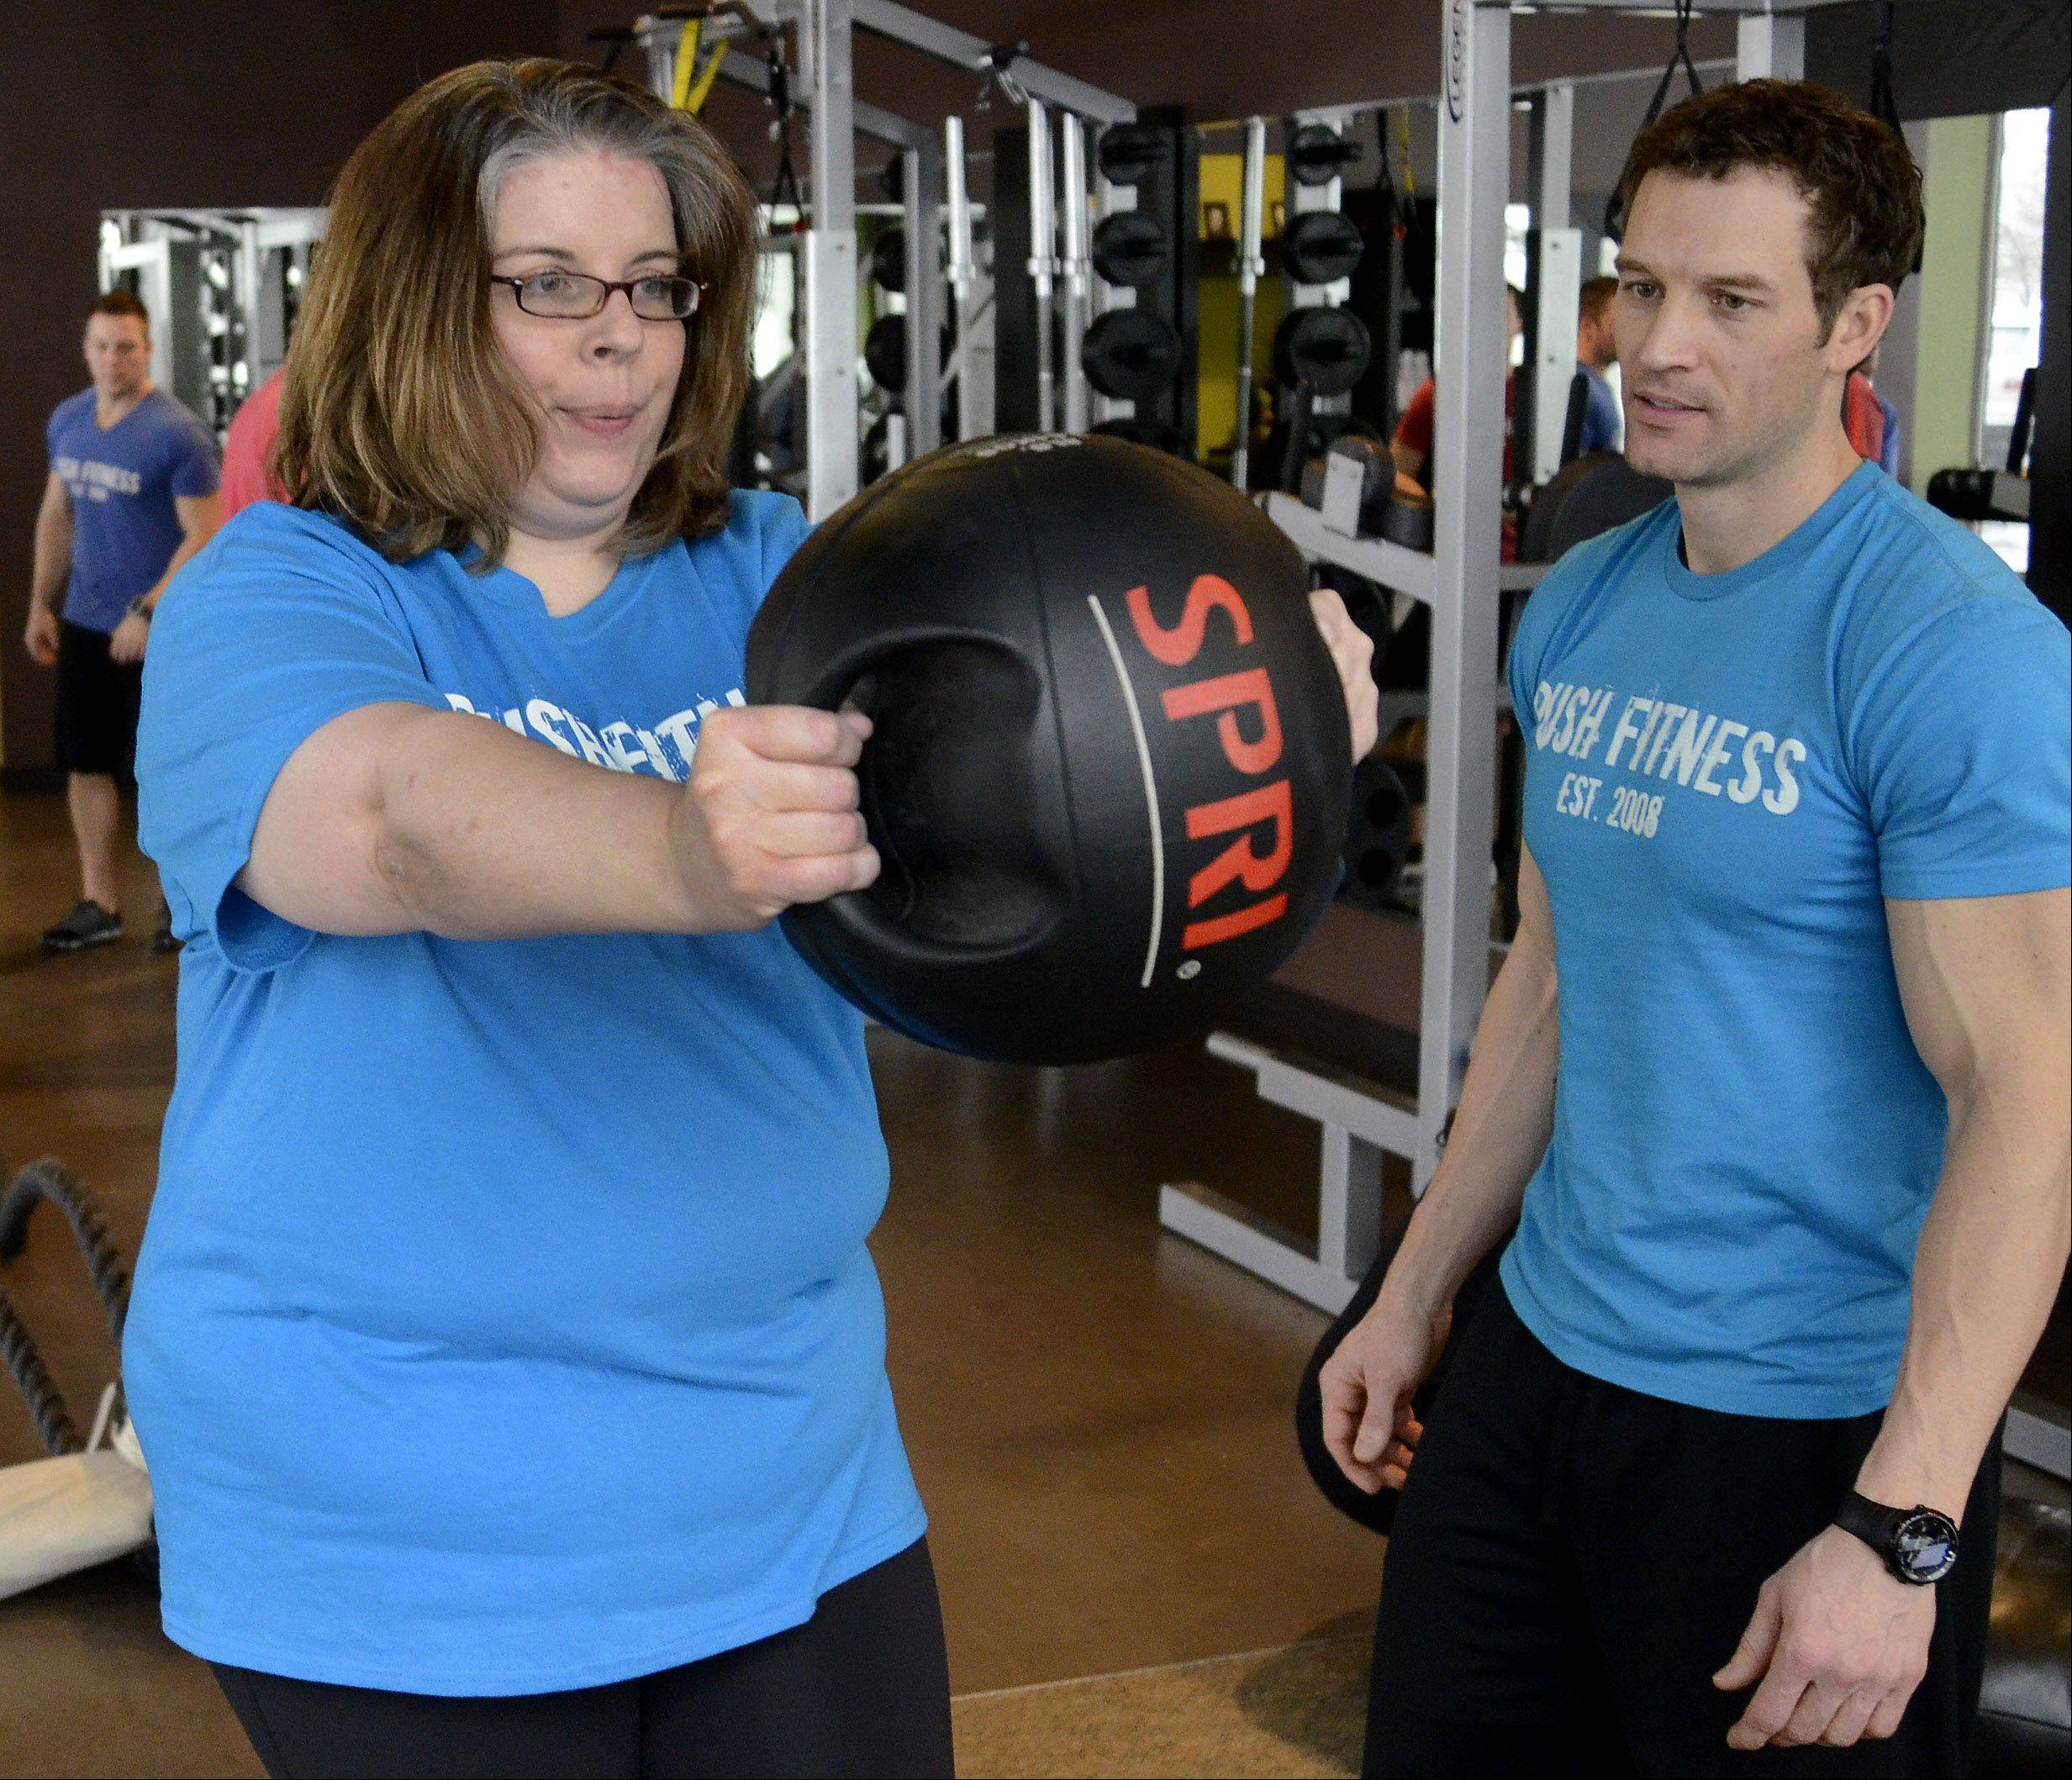 Look! It's my trainer Josh and me, and I'm practicing!